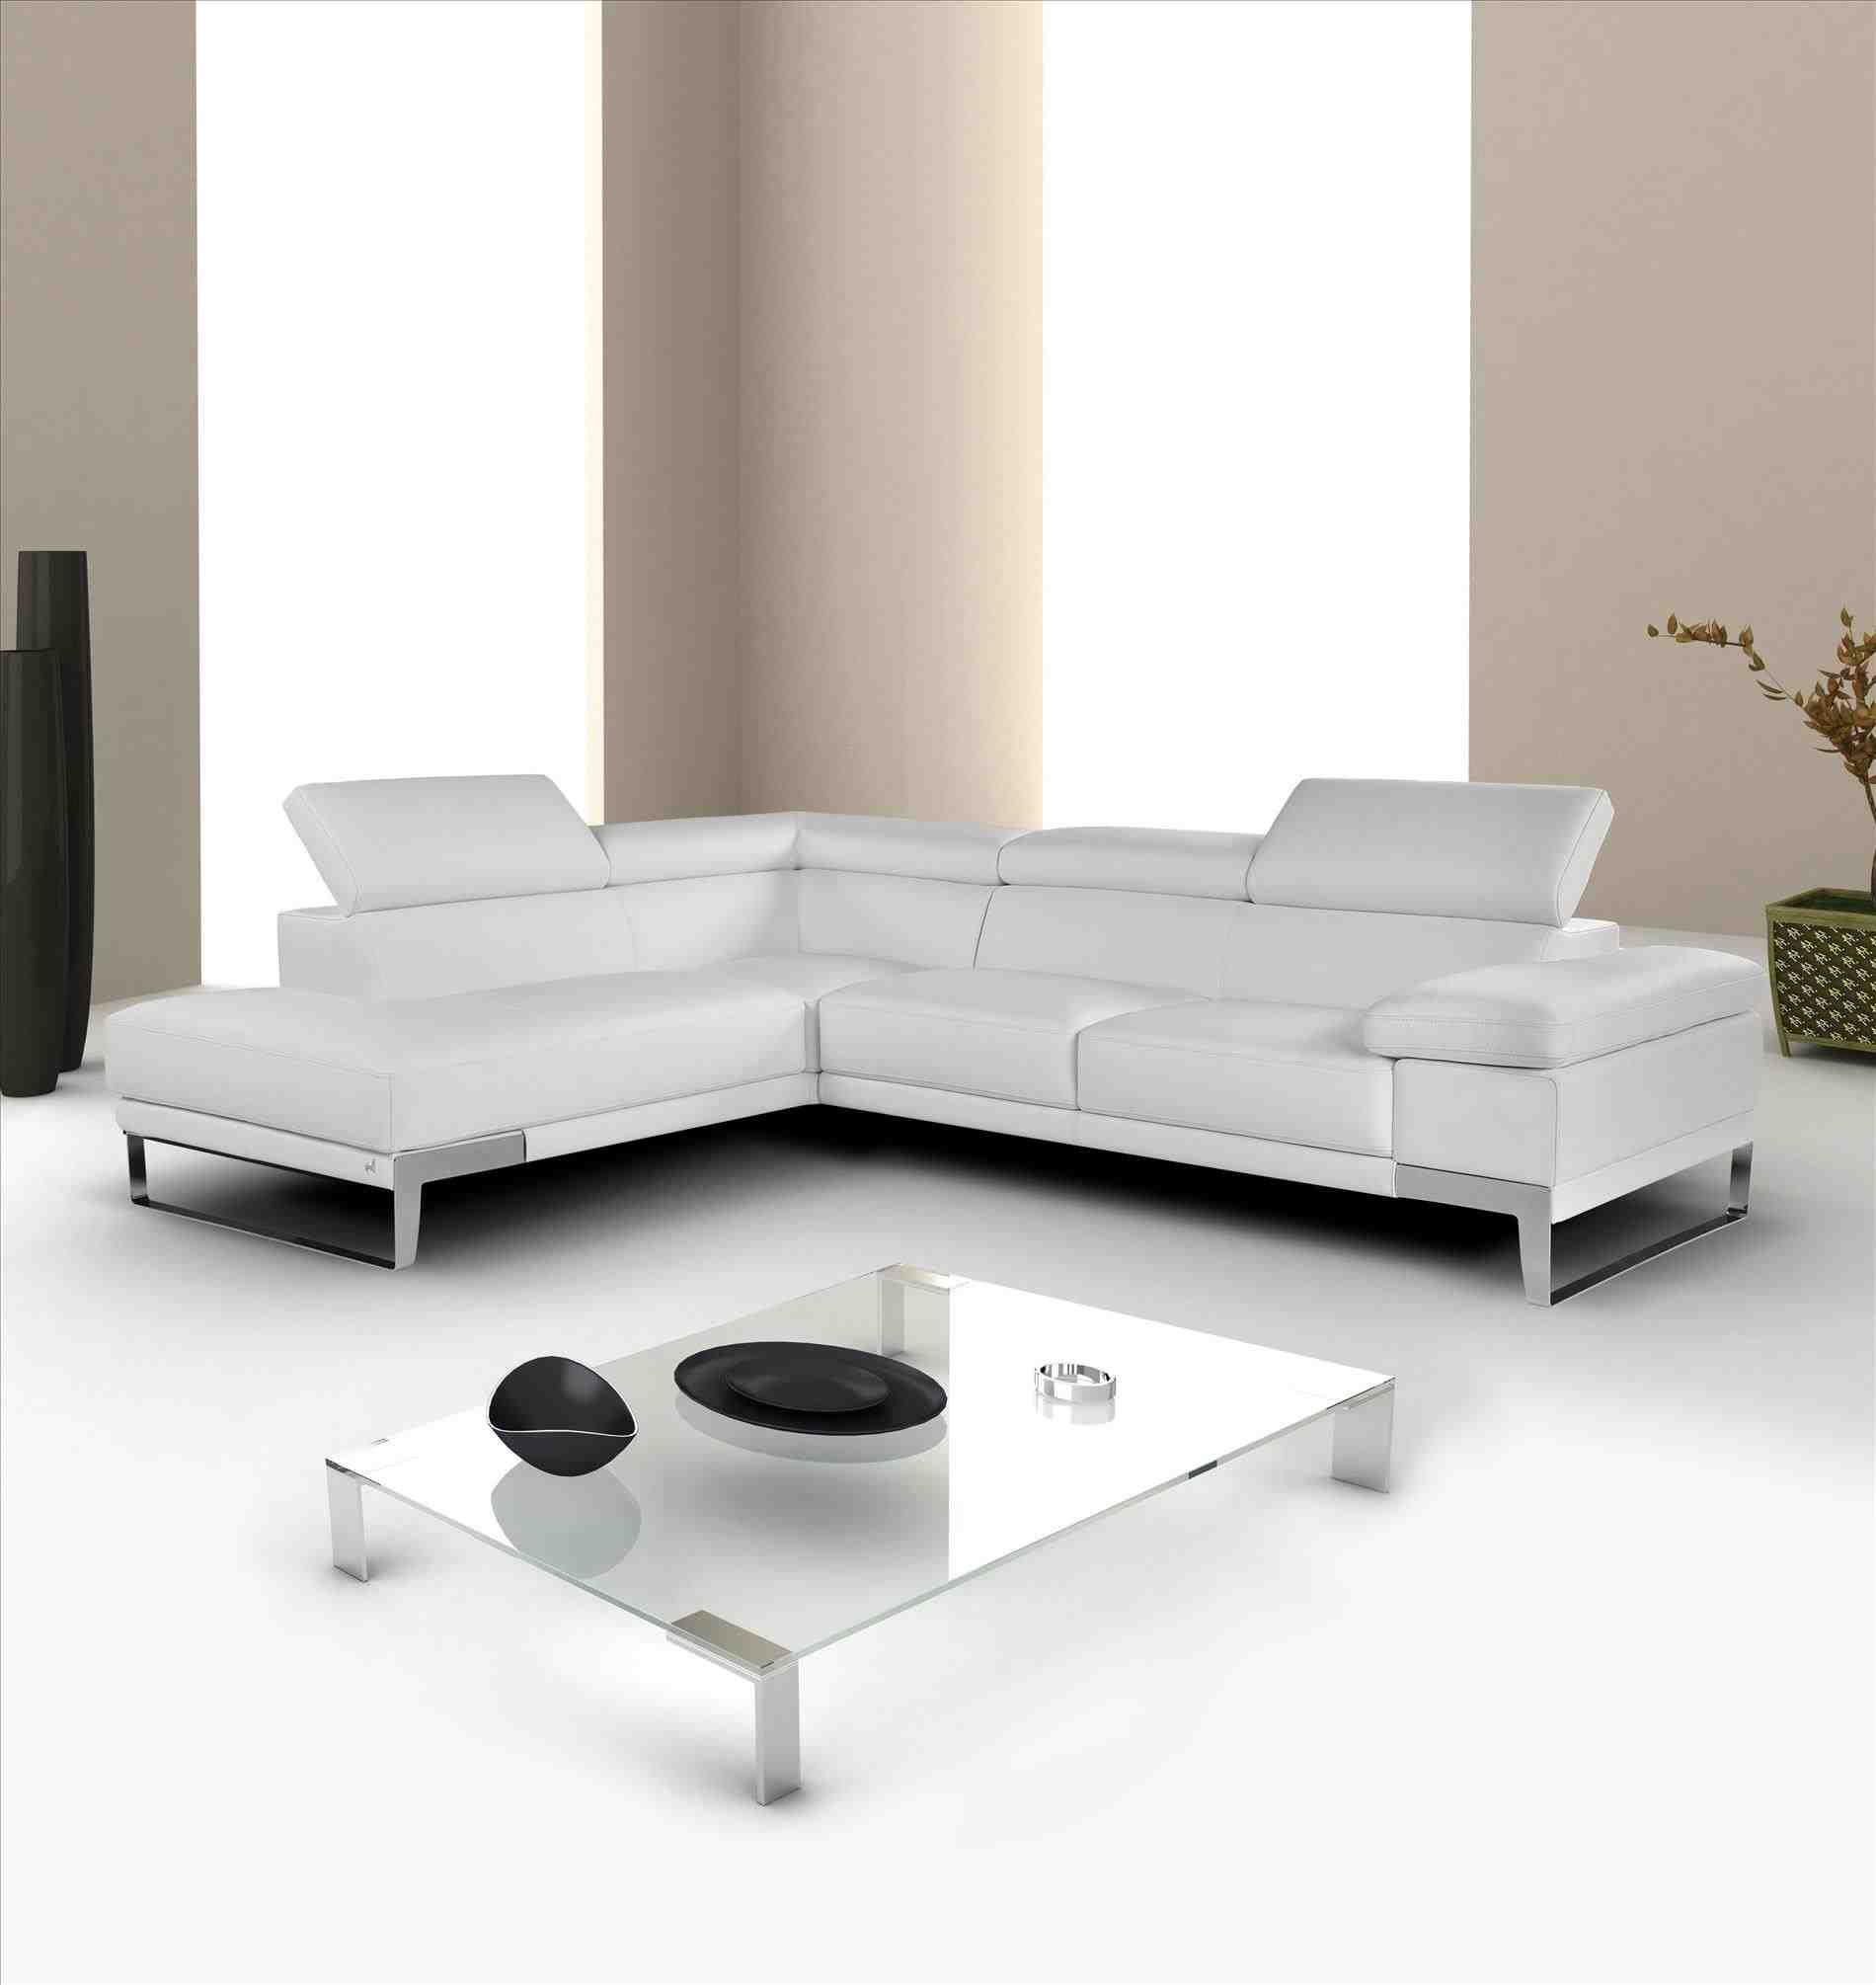 Cheap Modern Furniture Vancouver With Images Italian Leather